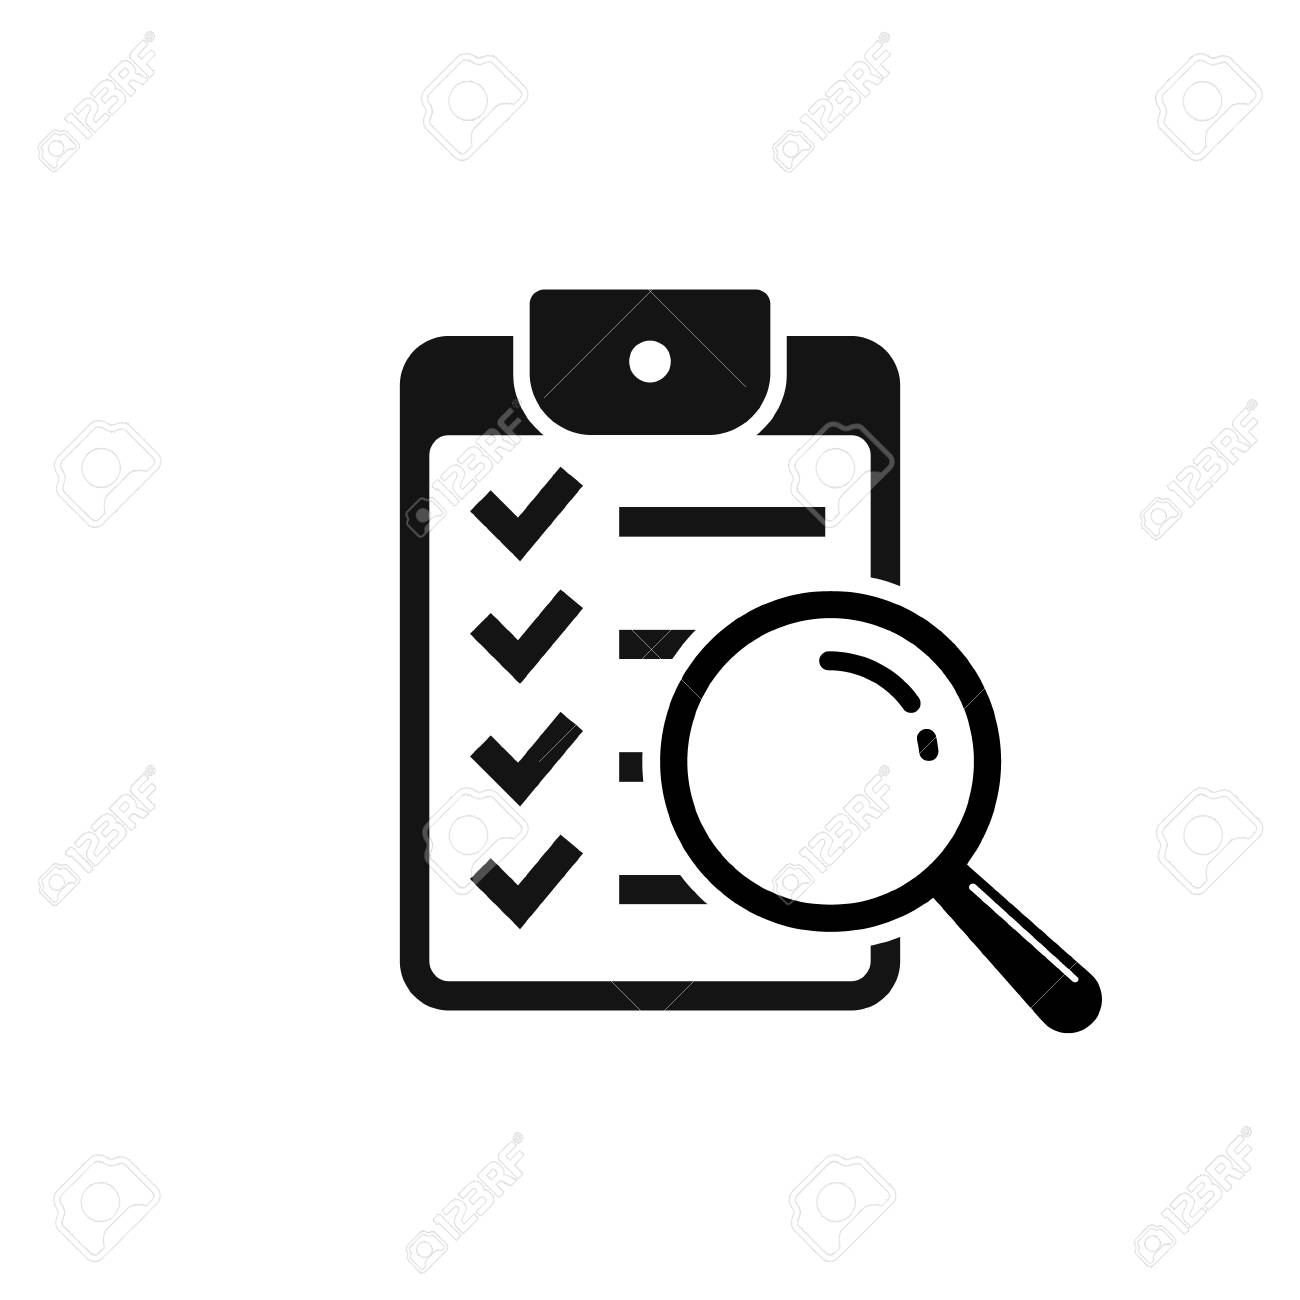 Magnifier assessment checklist icon. Vector flat style symbol. - 97600741